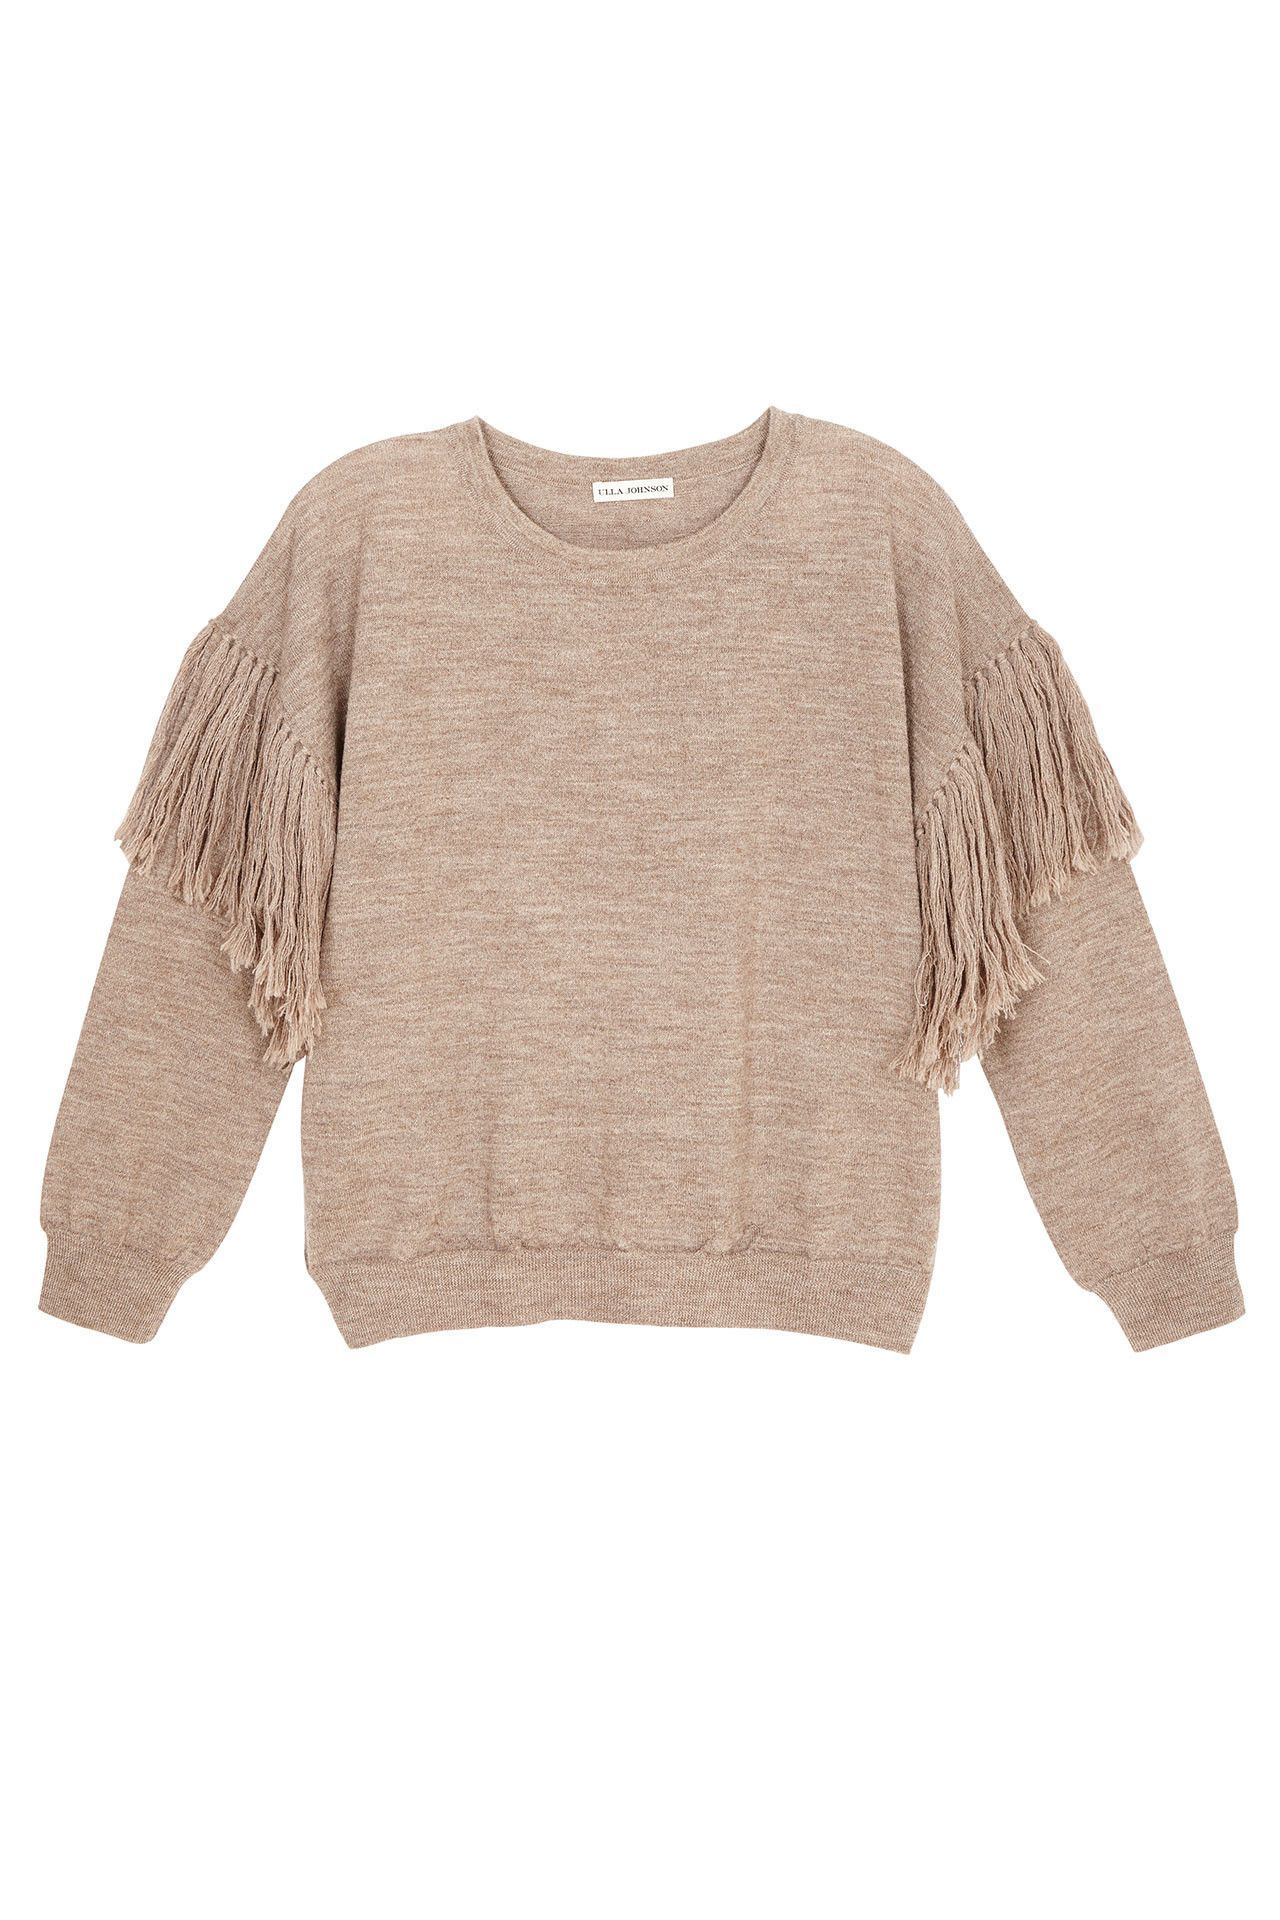 Love the fringe details on this sweater for that added street style element | Ulla Johnson Rosa Fringe weater